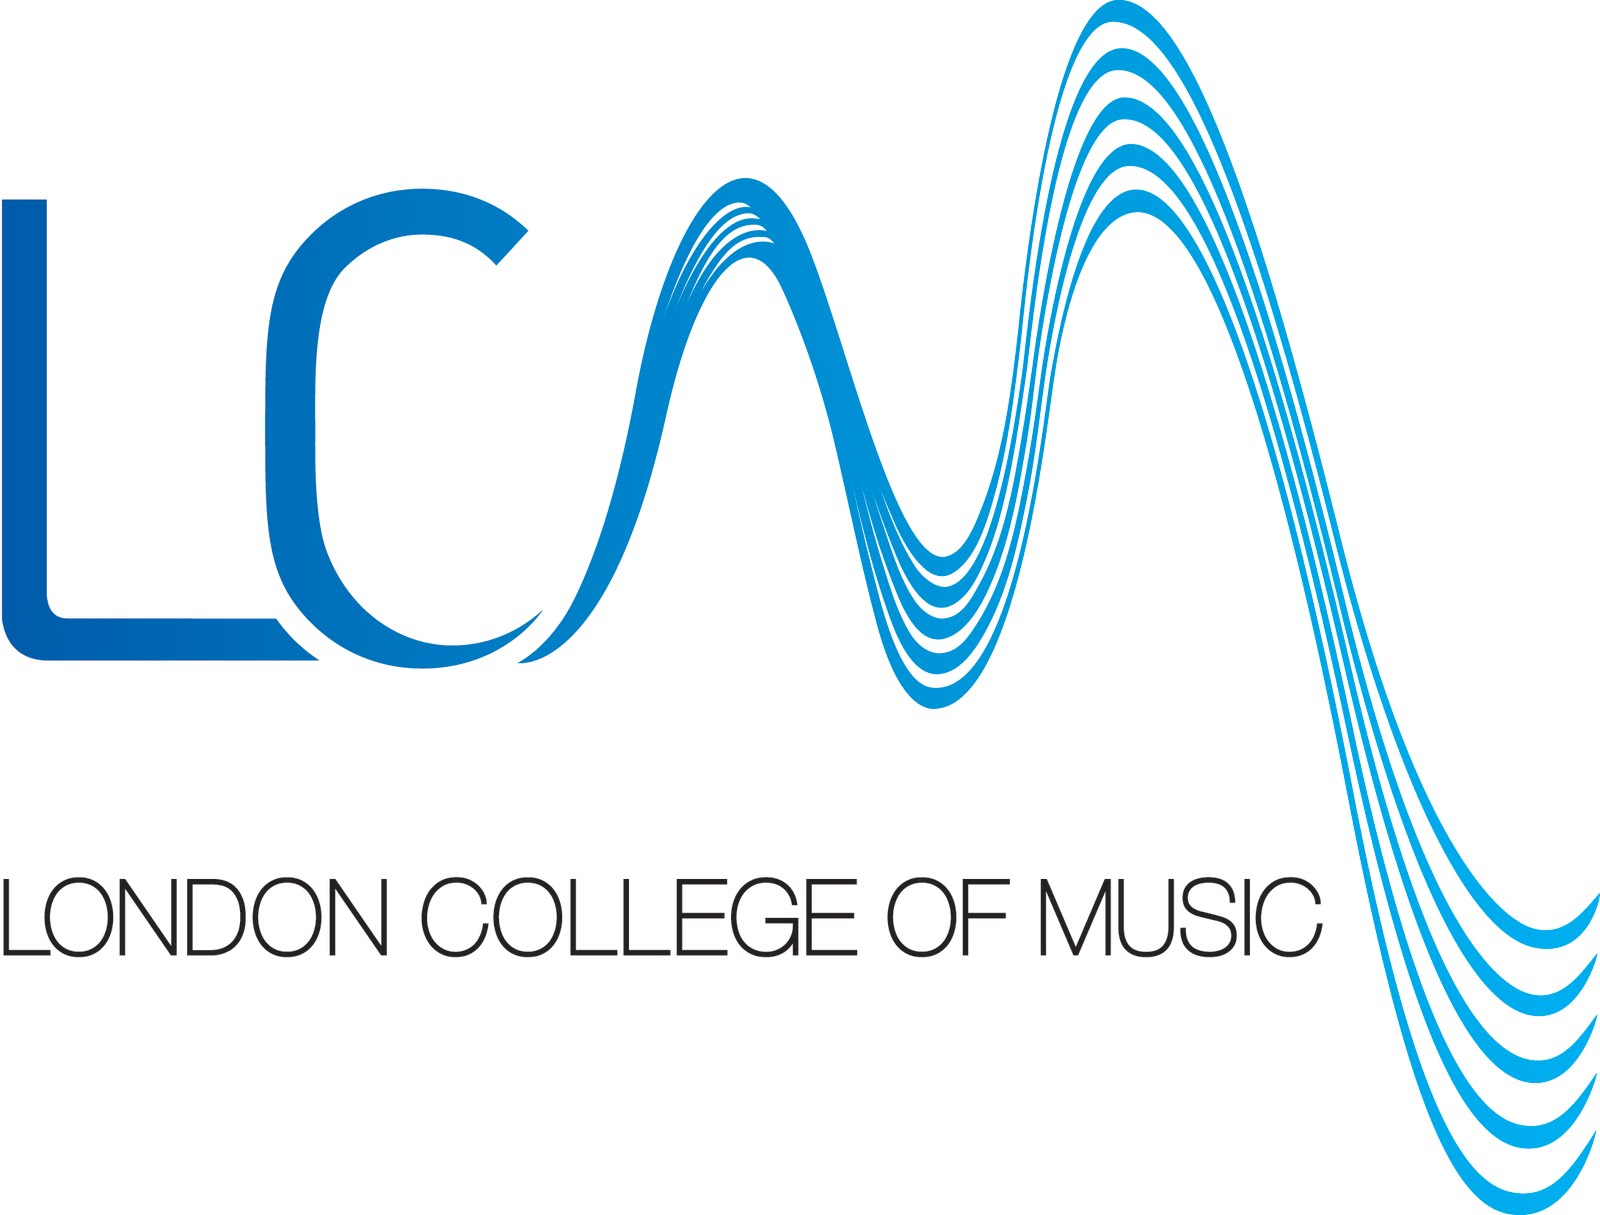 London College of Music Sertifikasyon Sistemi